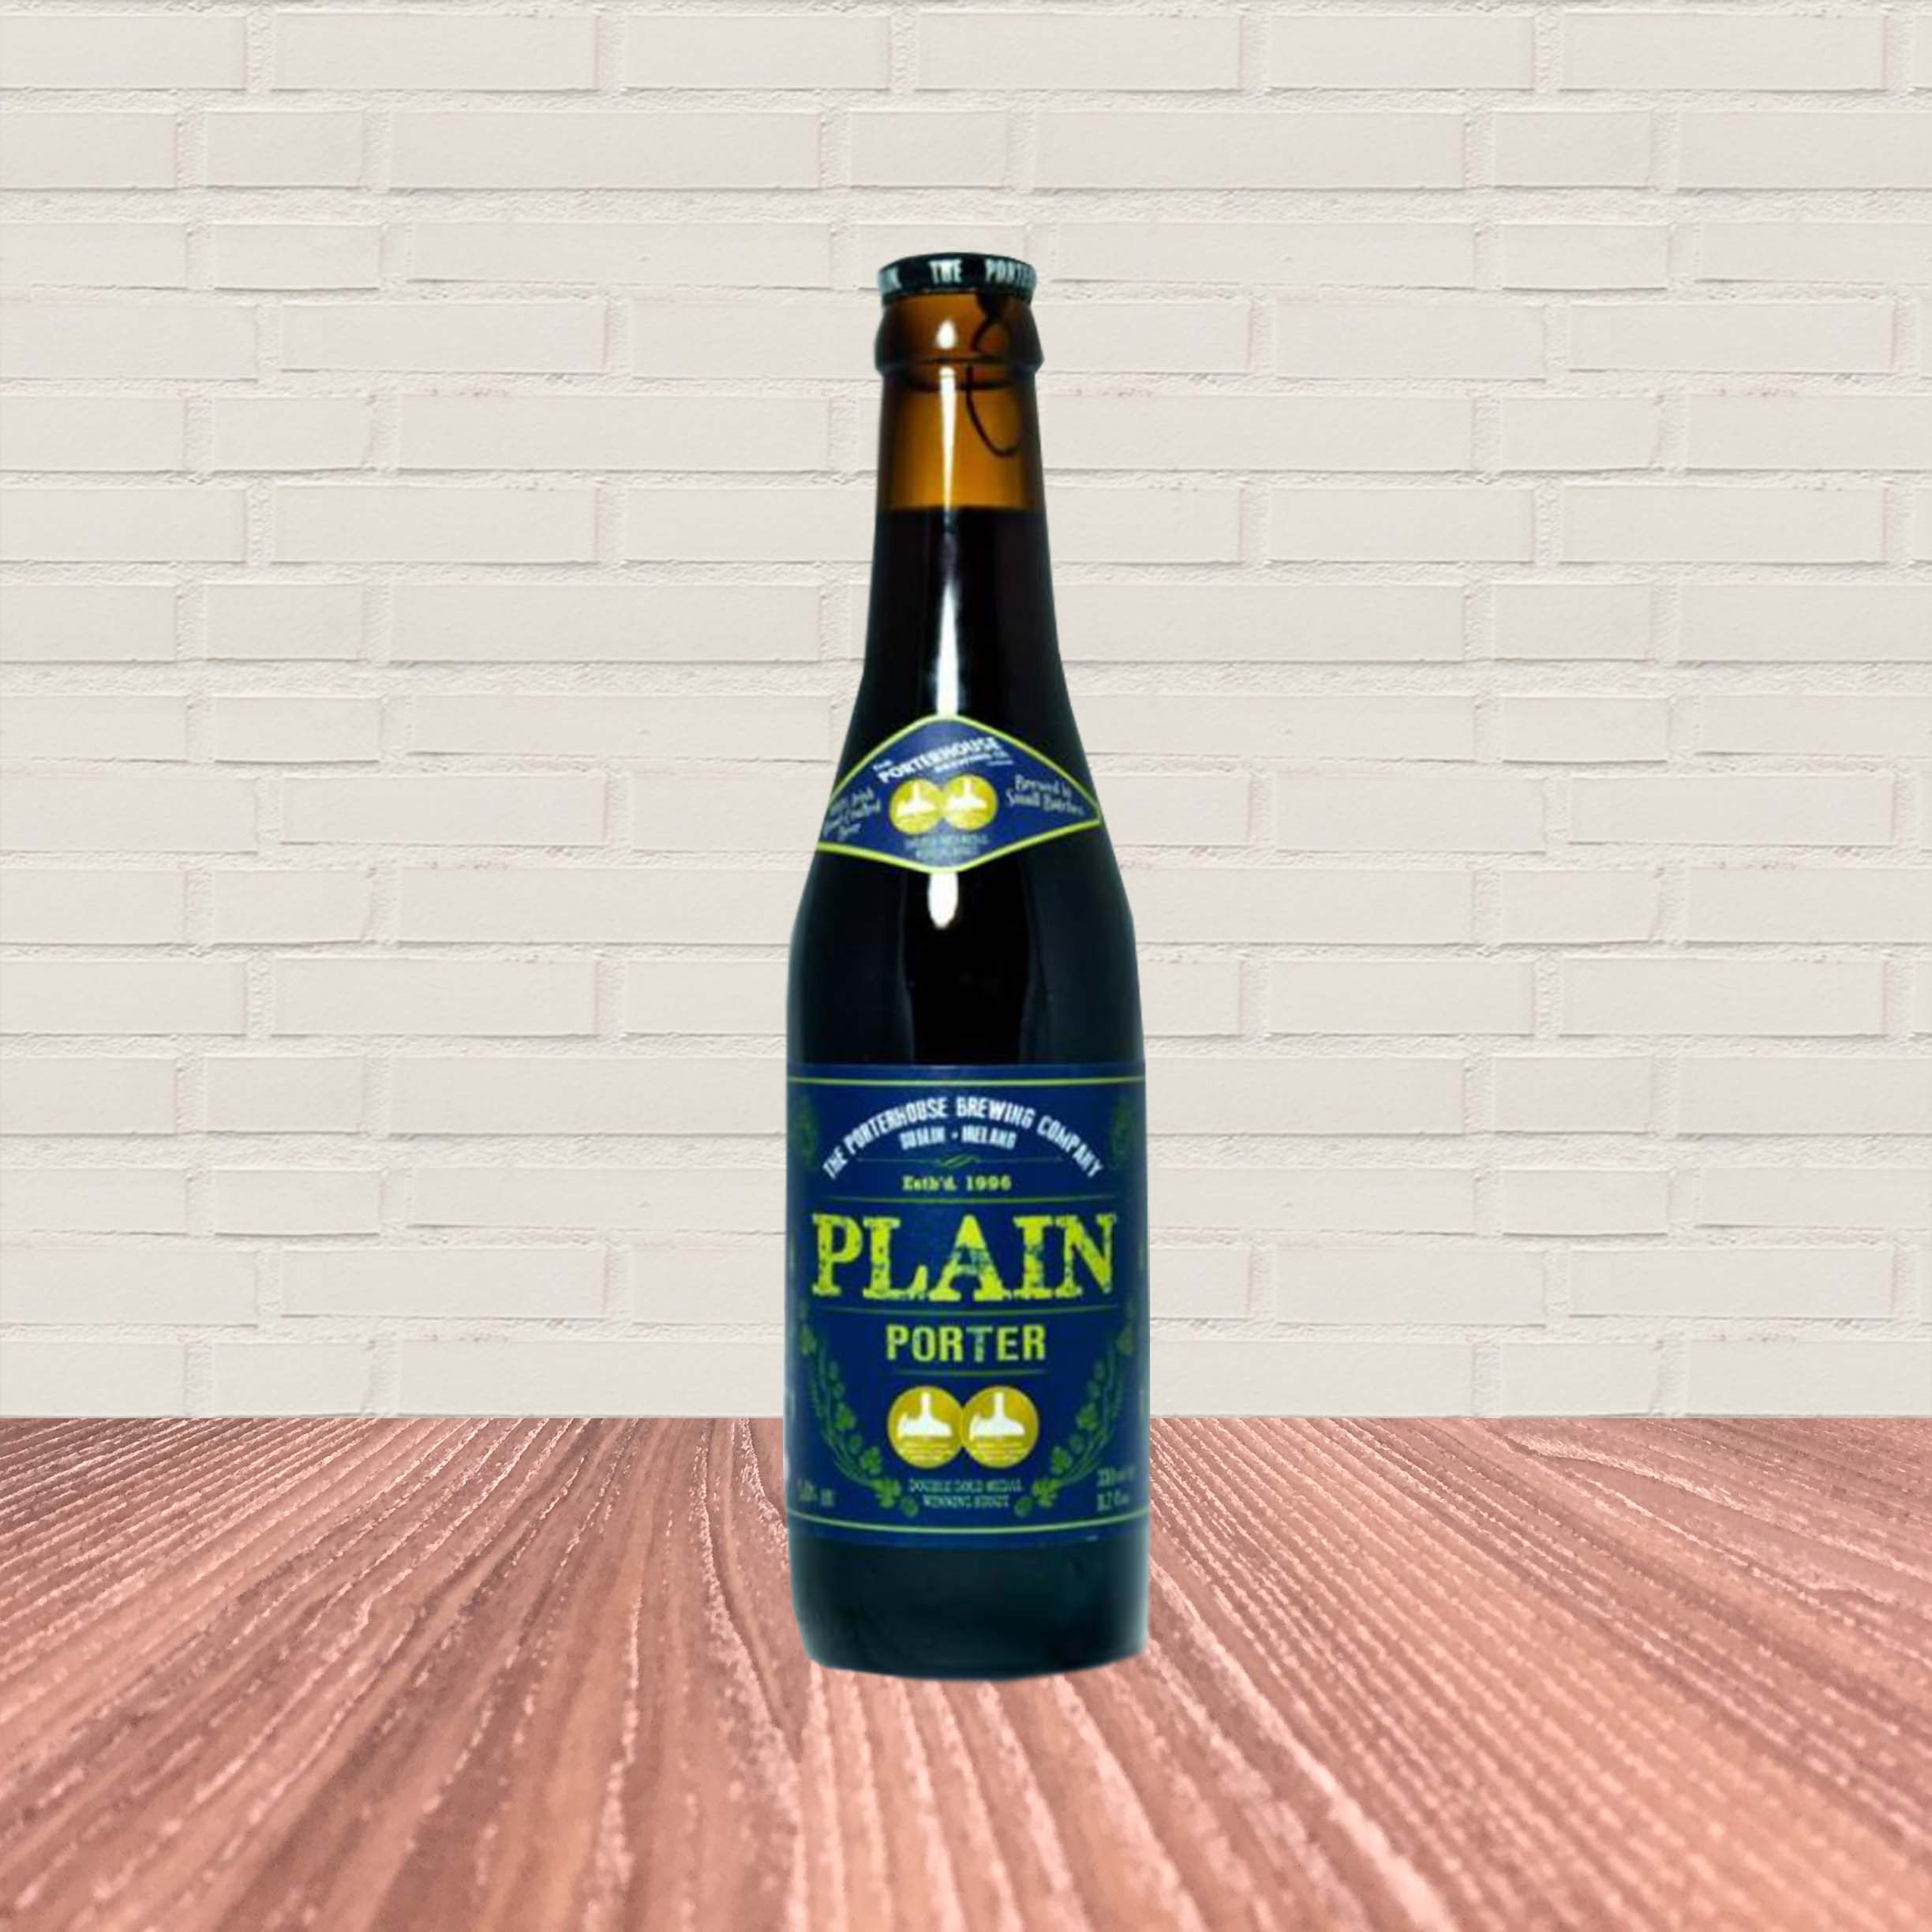 Plain Porter by Porterhouse